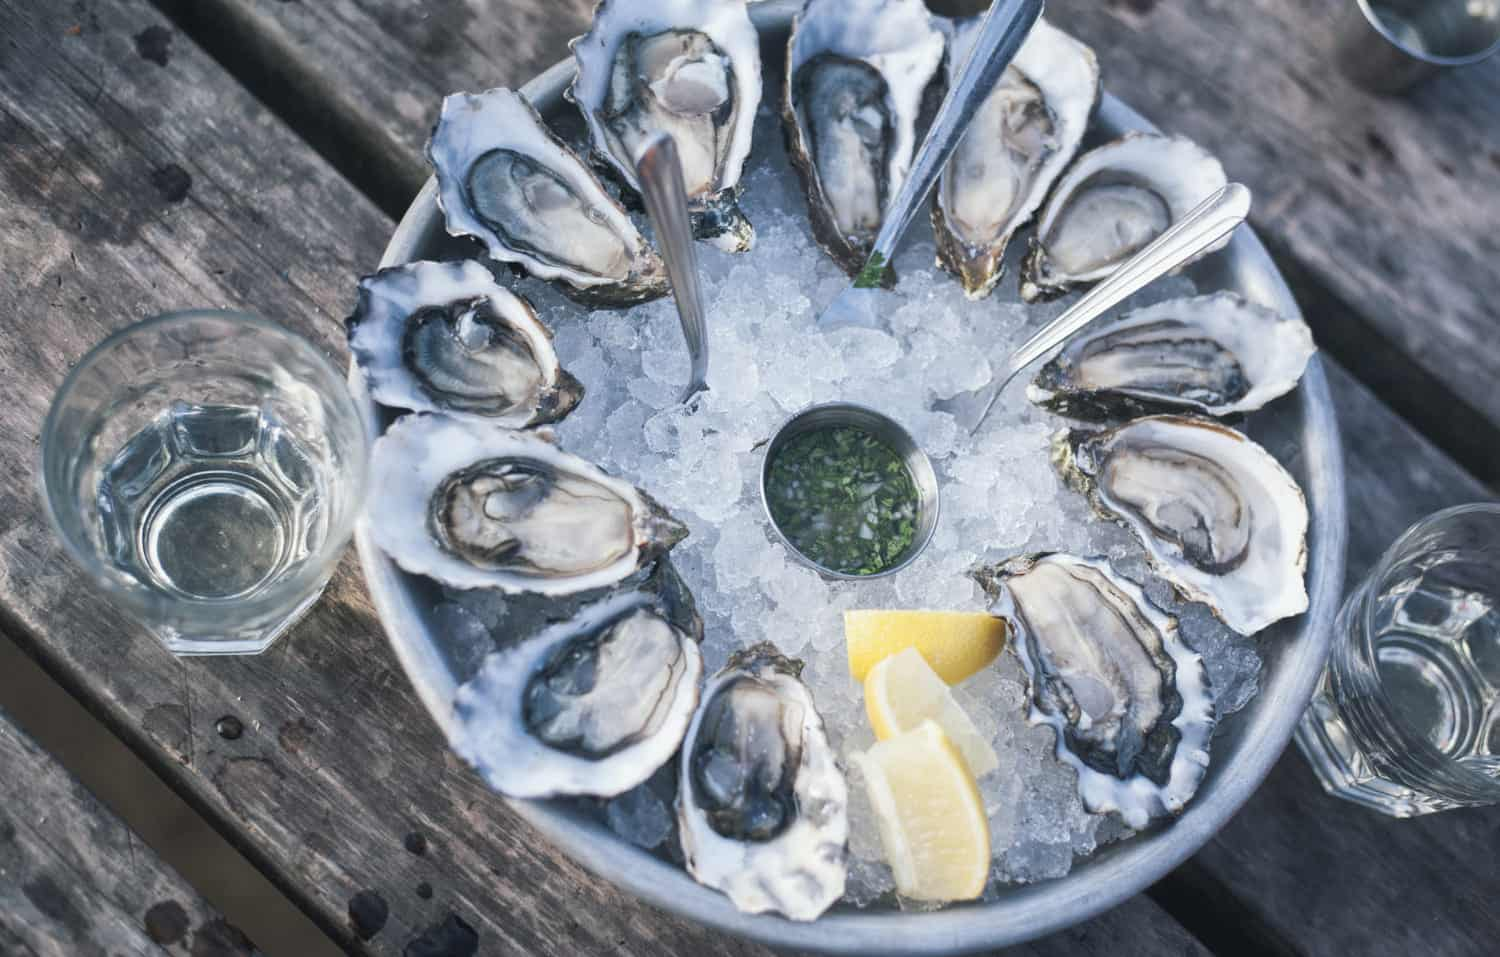 Oysters are an acquired taste but many people love them